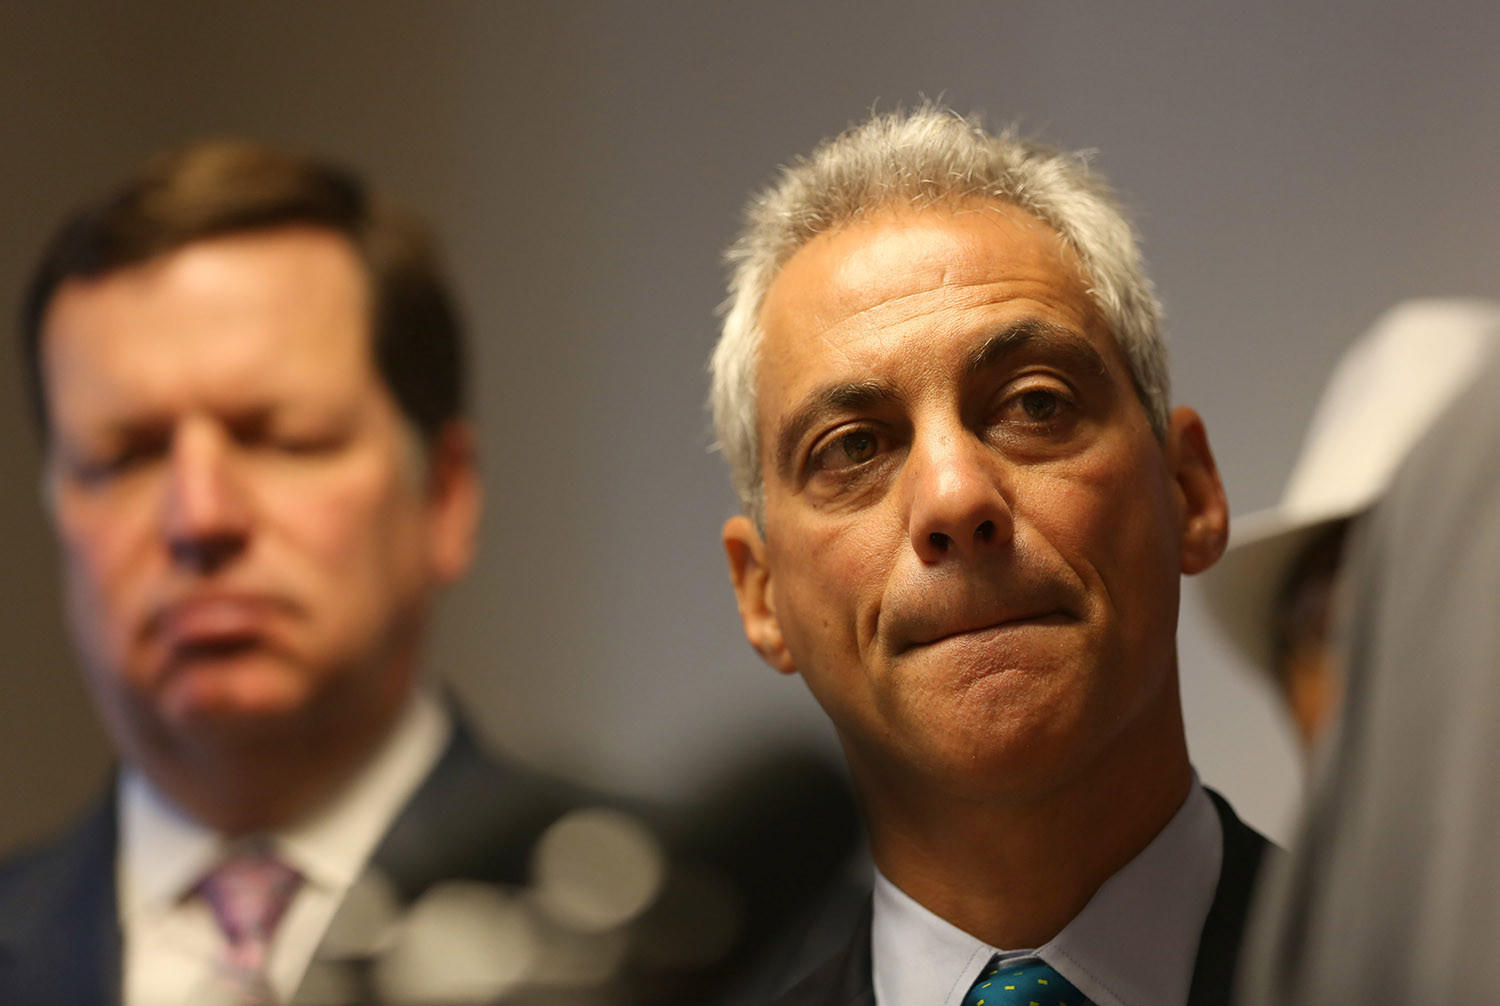 Internal investigation files for alleged police misconduct will be made public, officials said Sunday in a statement from Mayor Emanuel's office.